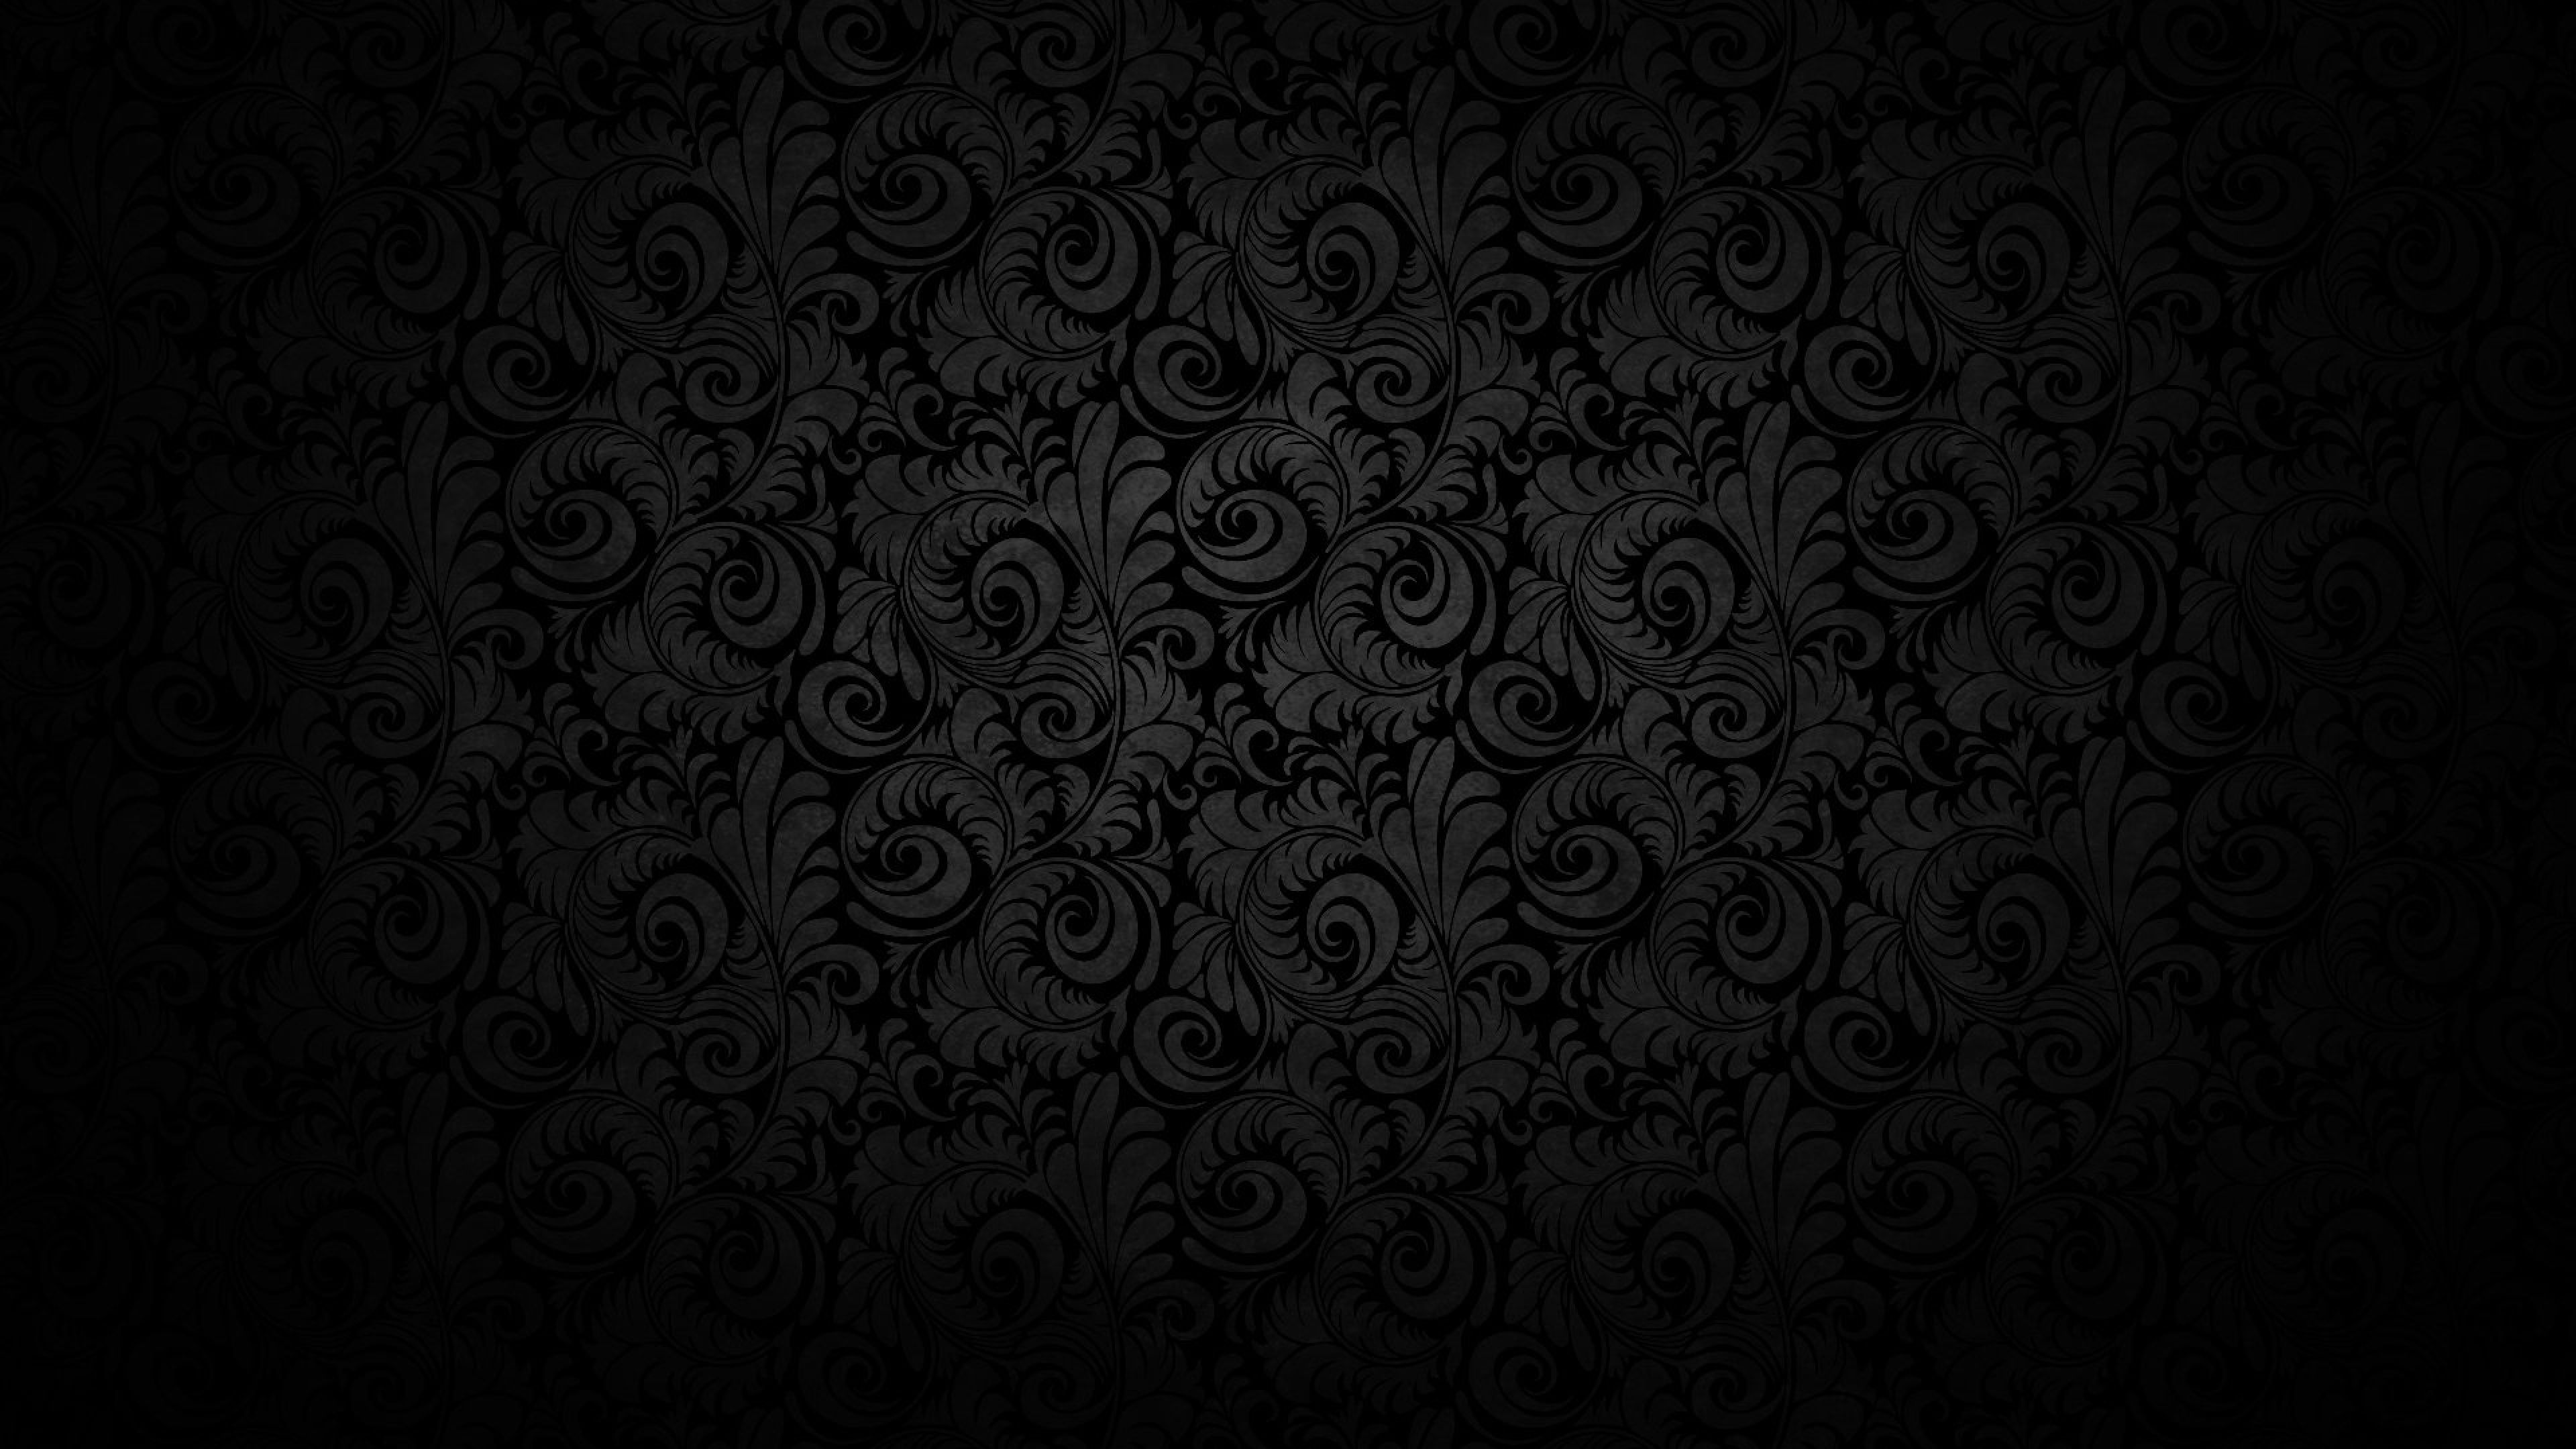 4k Ultra Hd Black Wallpapers Top Free 4k Ultra Hd Black